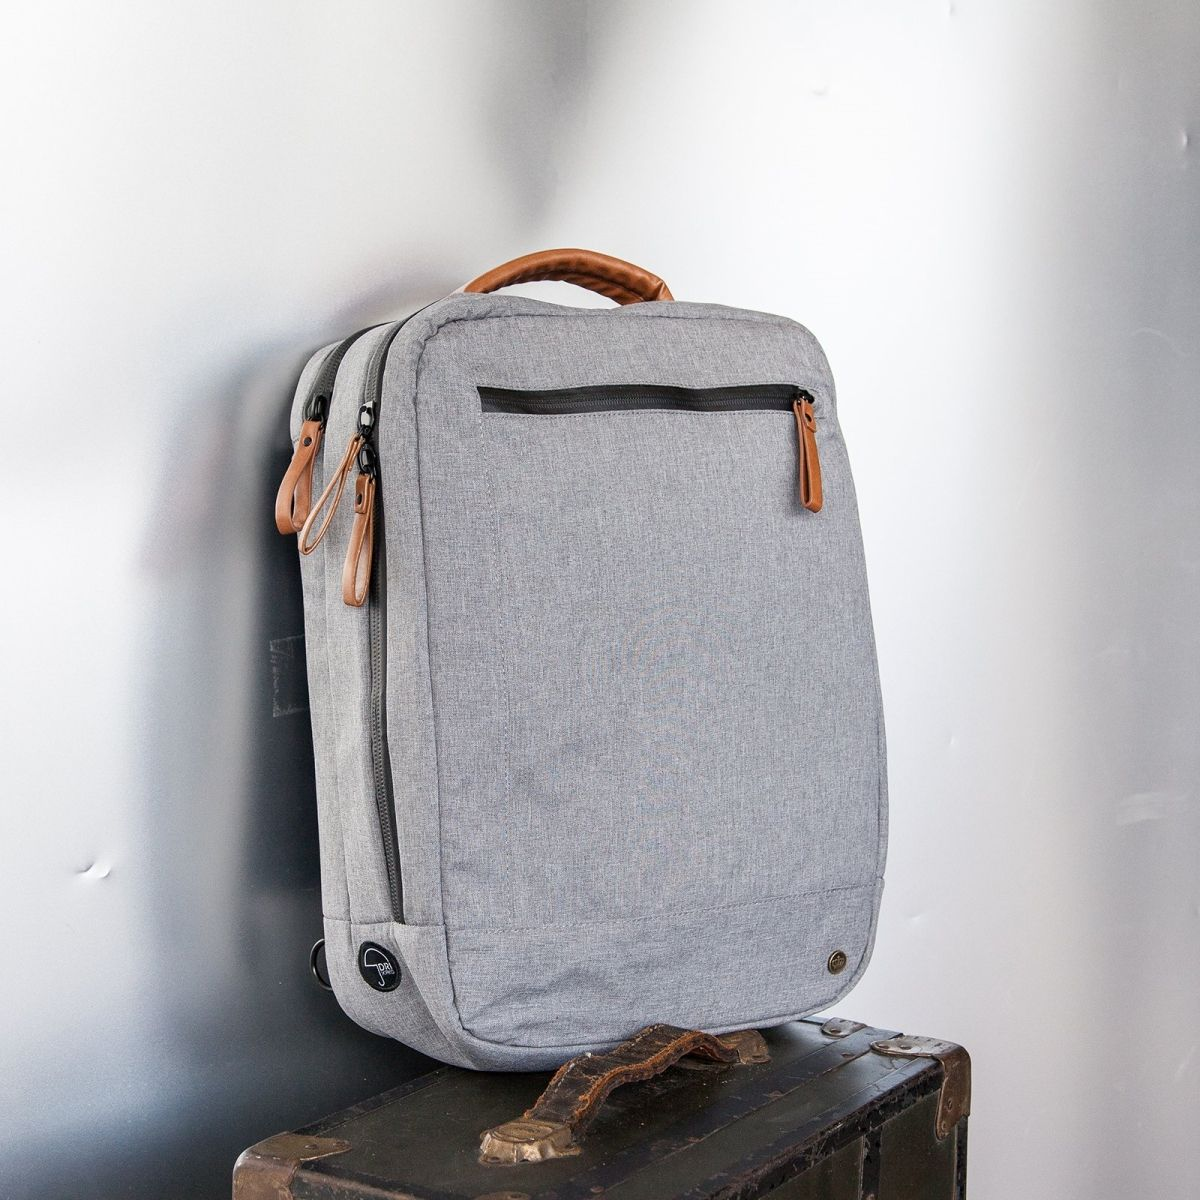 PKG Backpack - Brief Bag - Light Grey